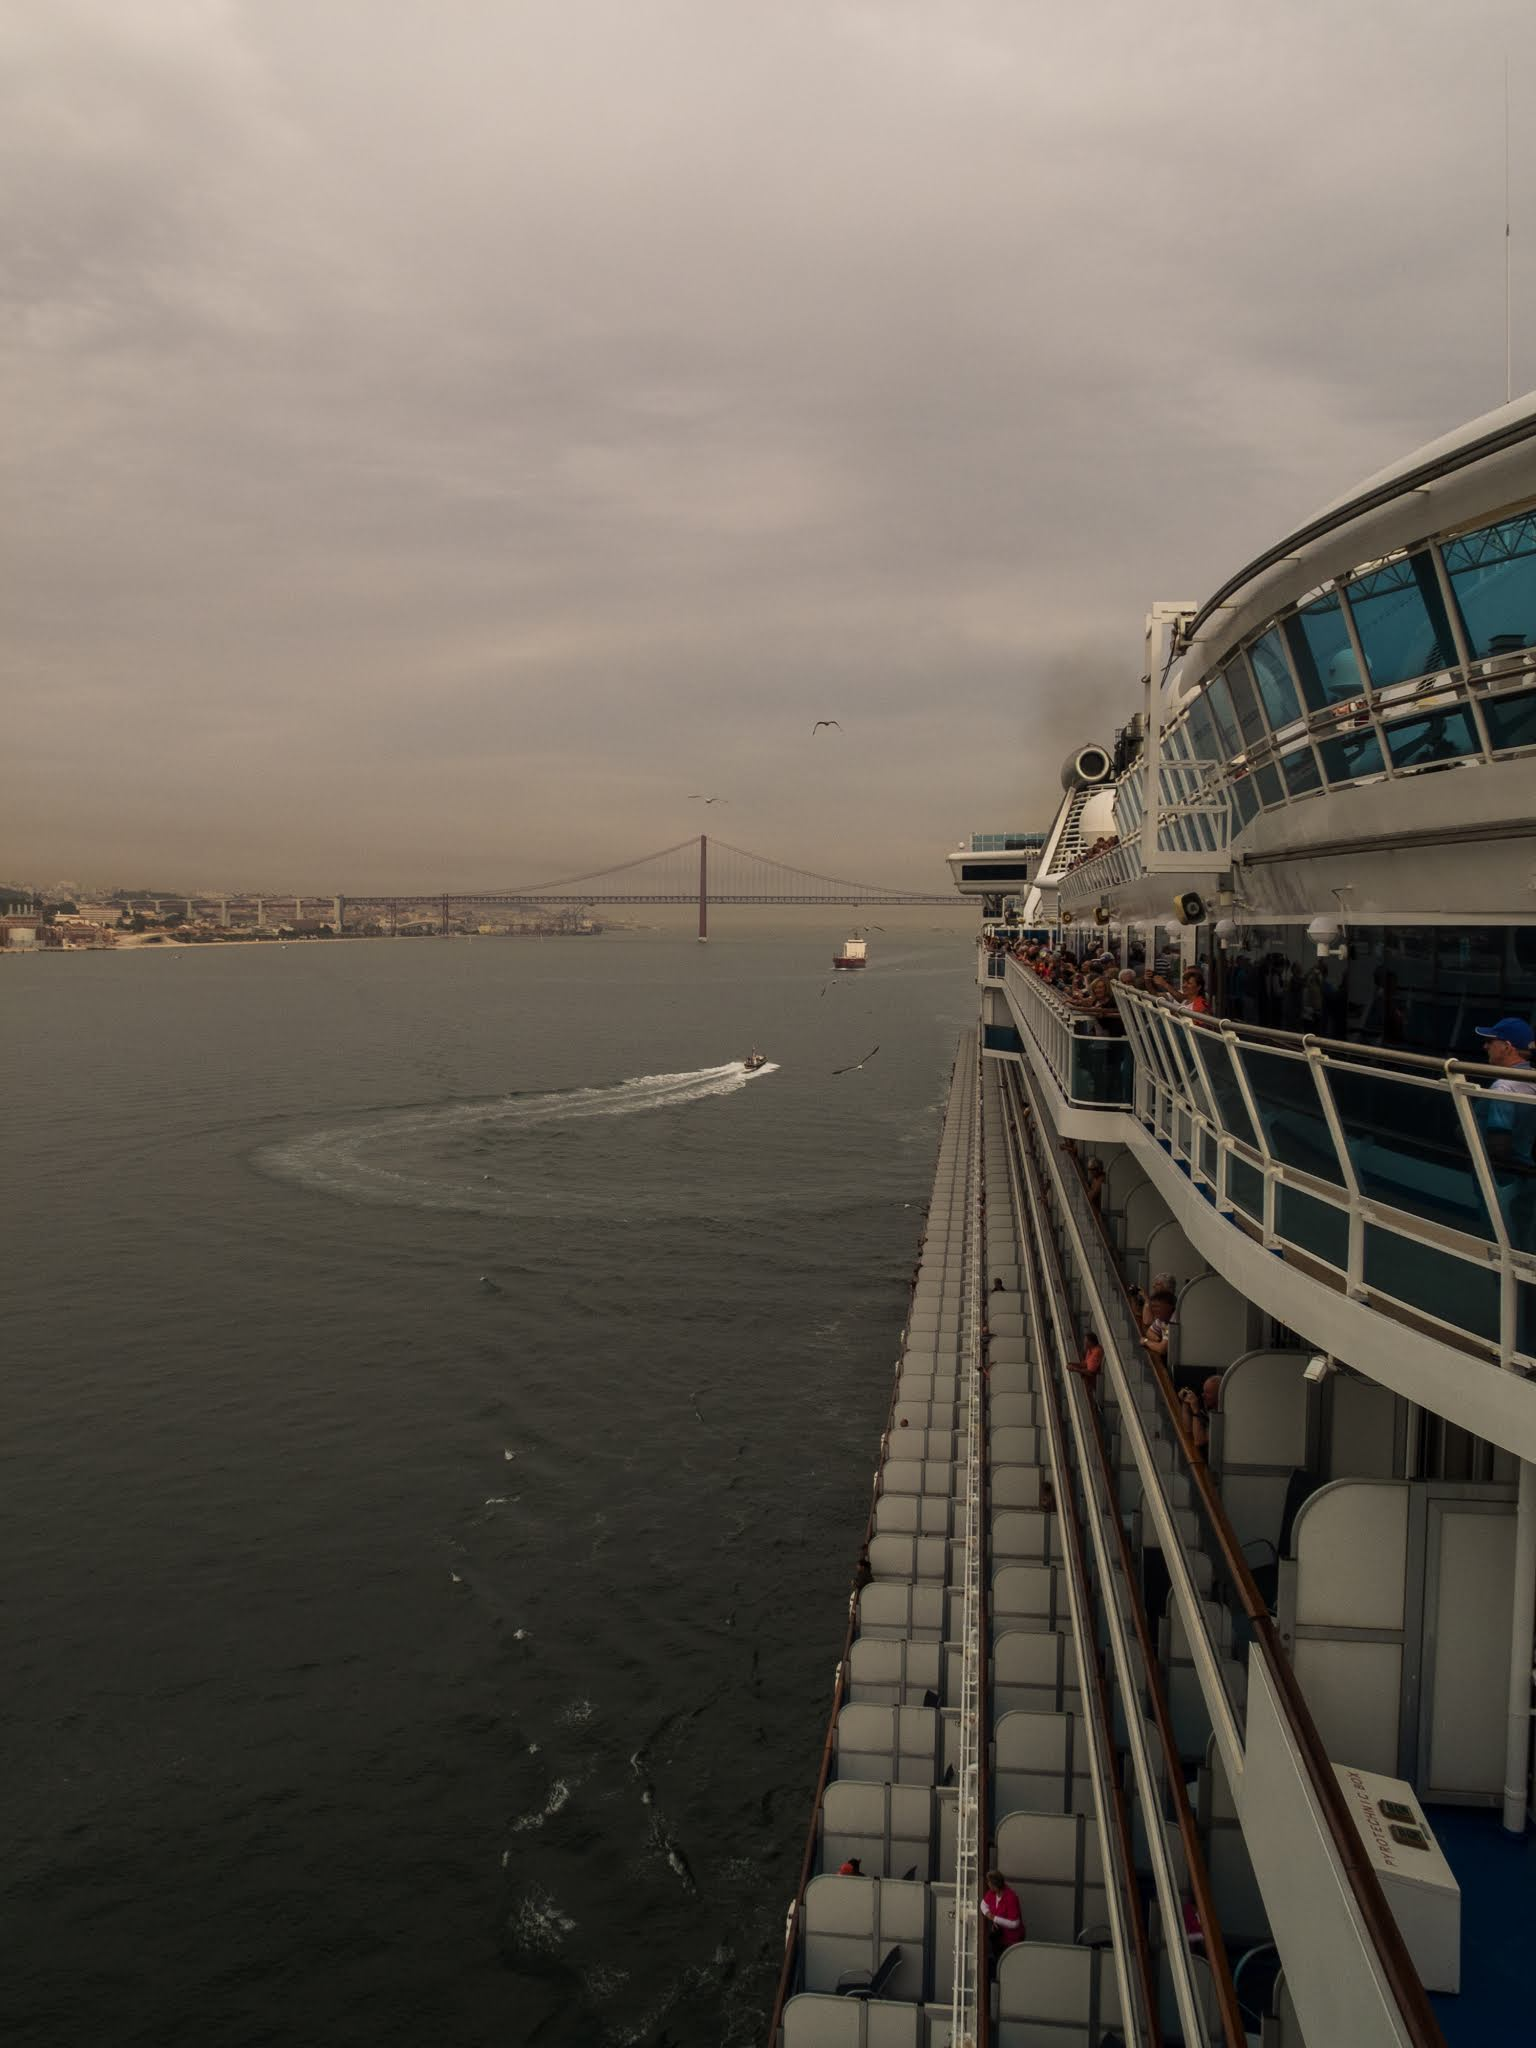 View of a cruise ship sailing from the port of Lisbon.